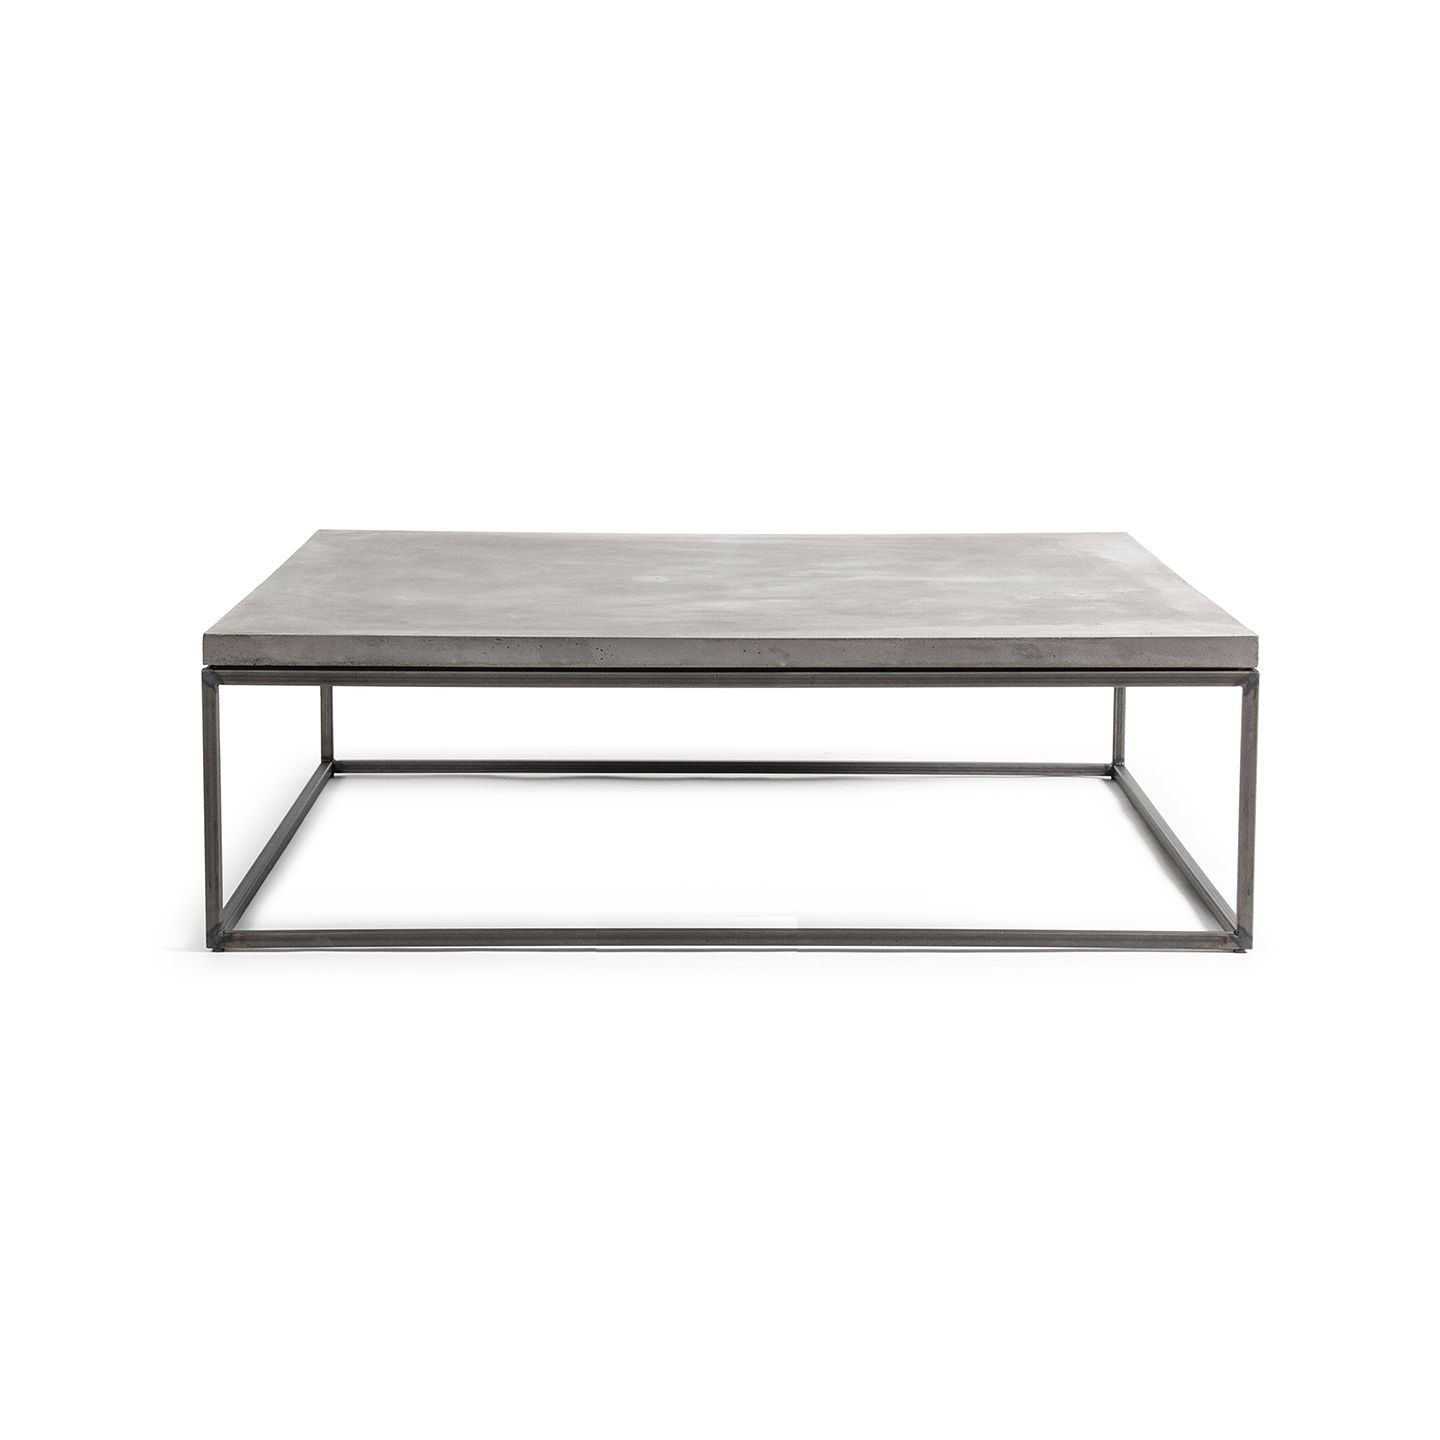 11 Lovely Metal Coffee Table Sets Throughout Fashionable Potomac Adjustable Coffee Tables (View 16 of 20)